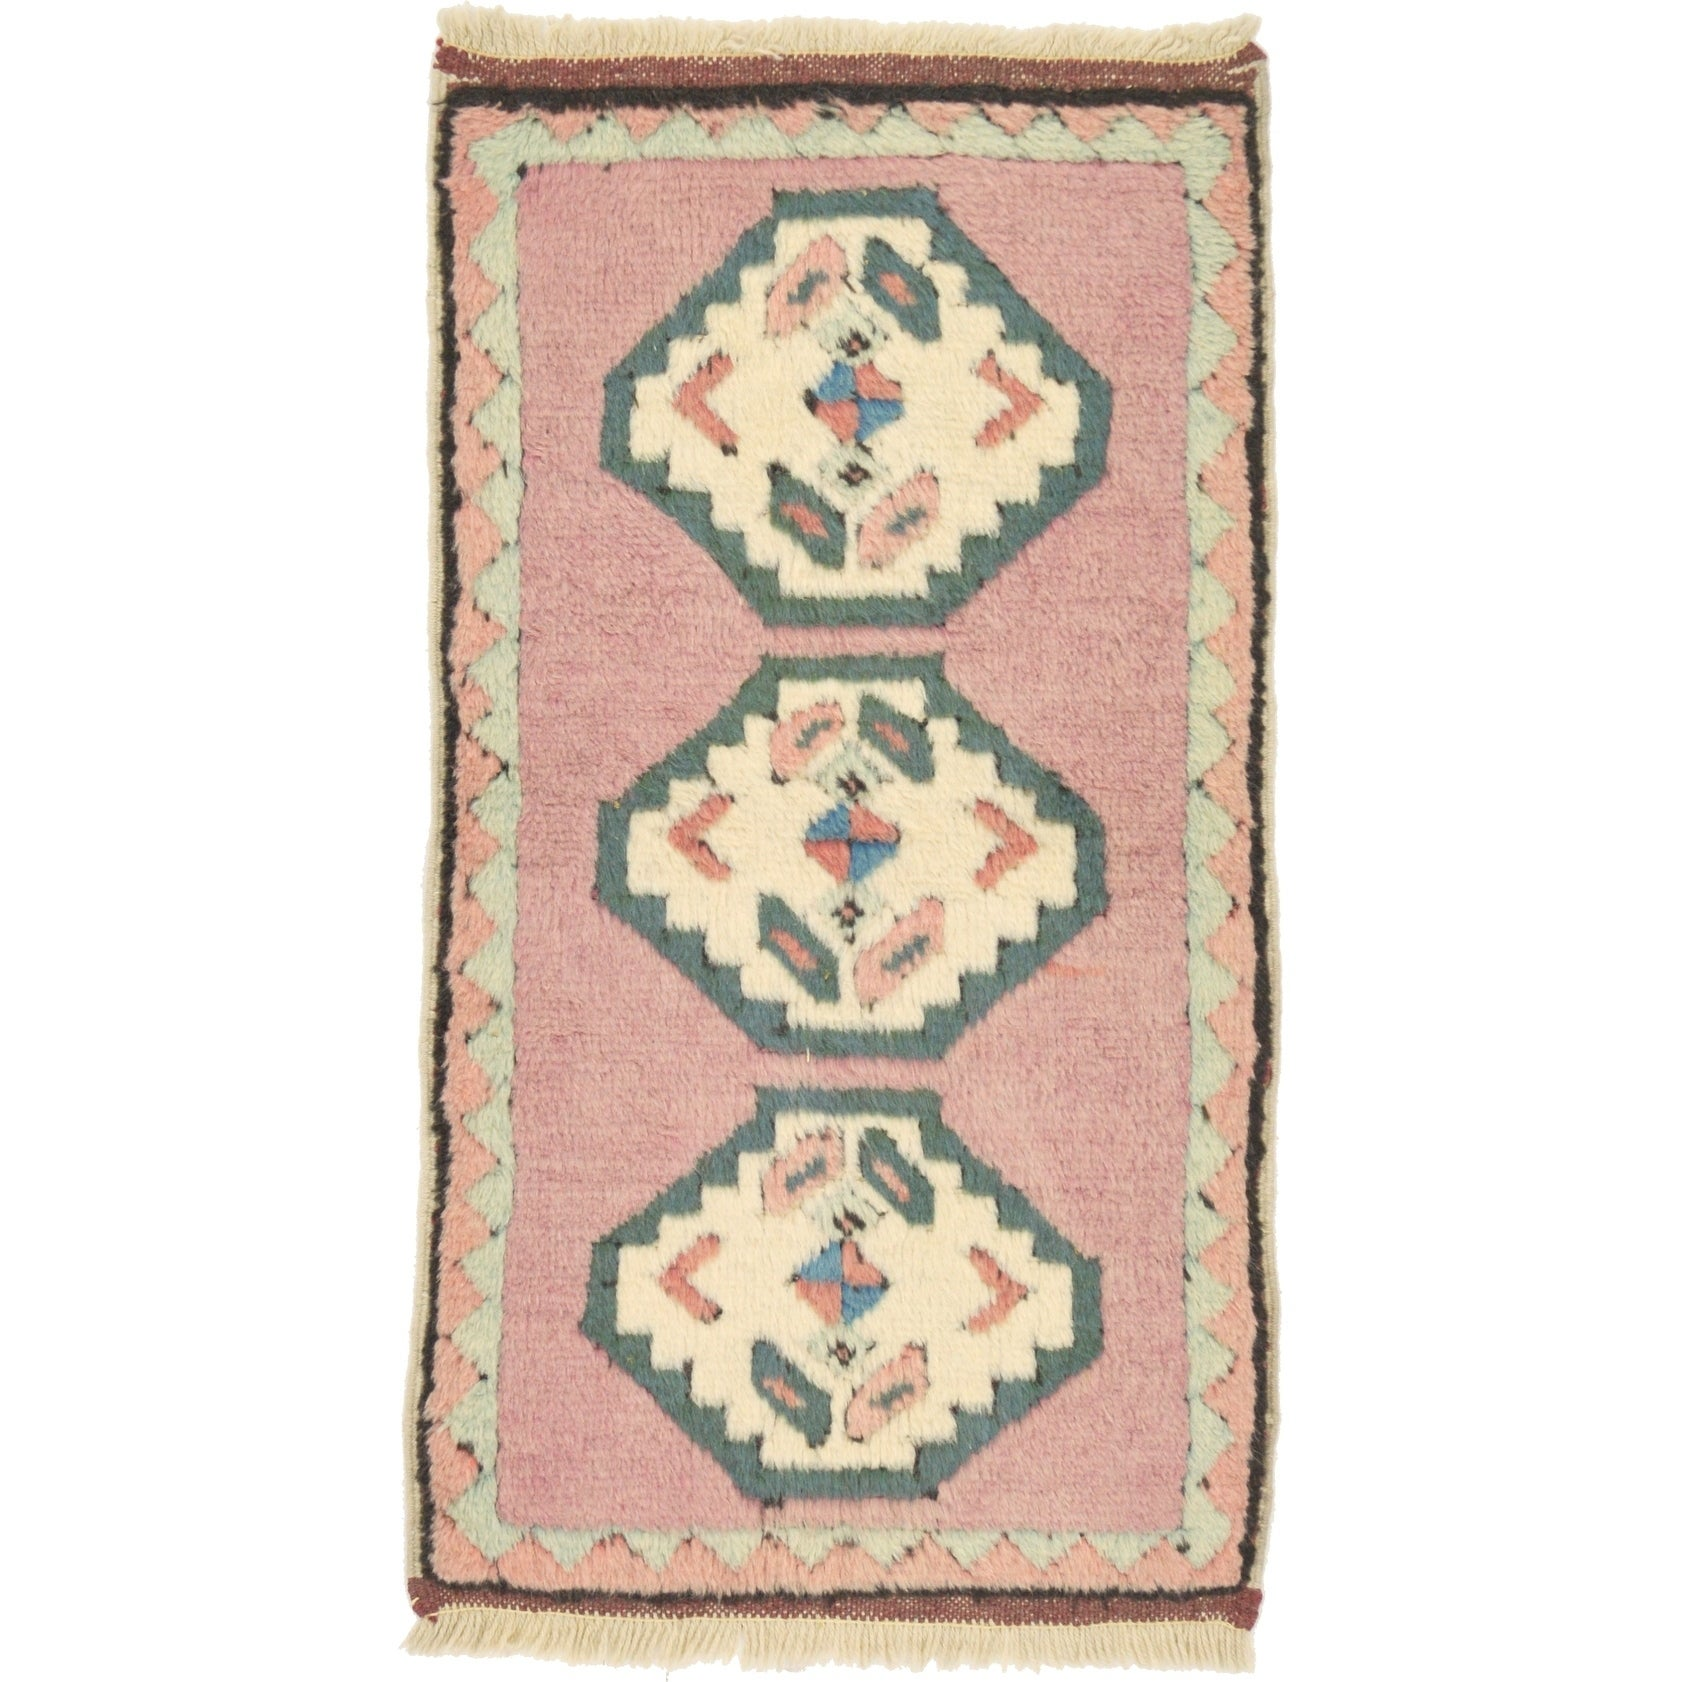 Hand Knotted Kars Wool Area Rug - 1 9 x 3 3 (puce - 1 9 x 3 3)